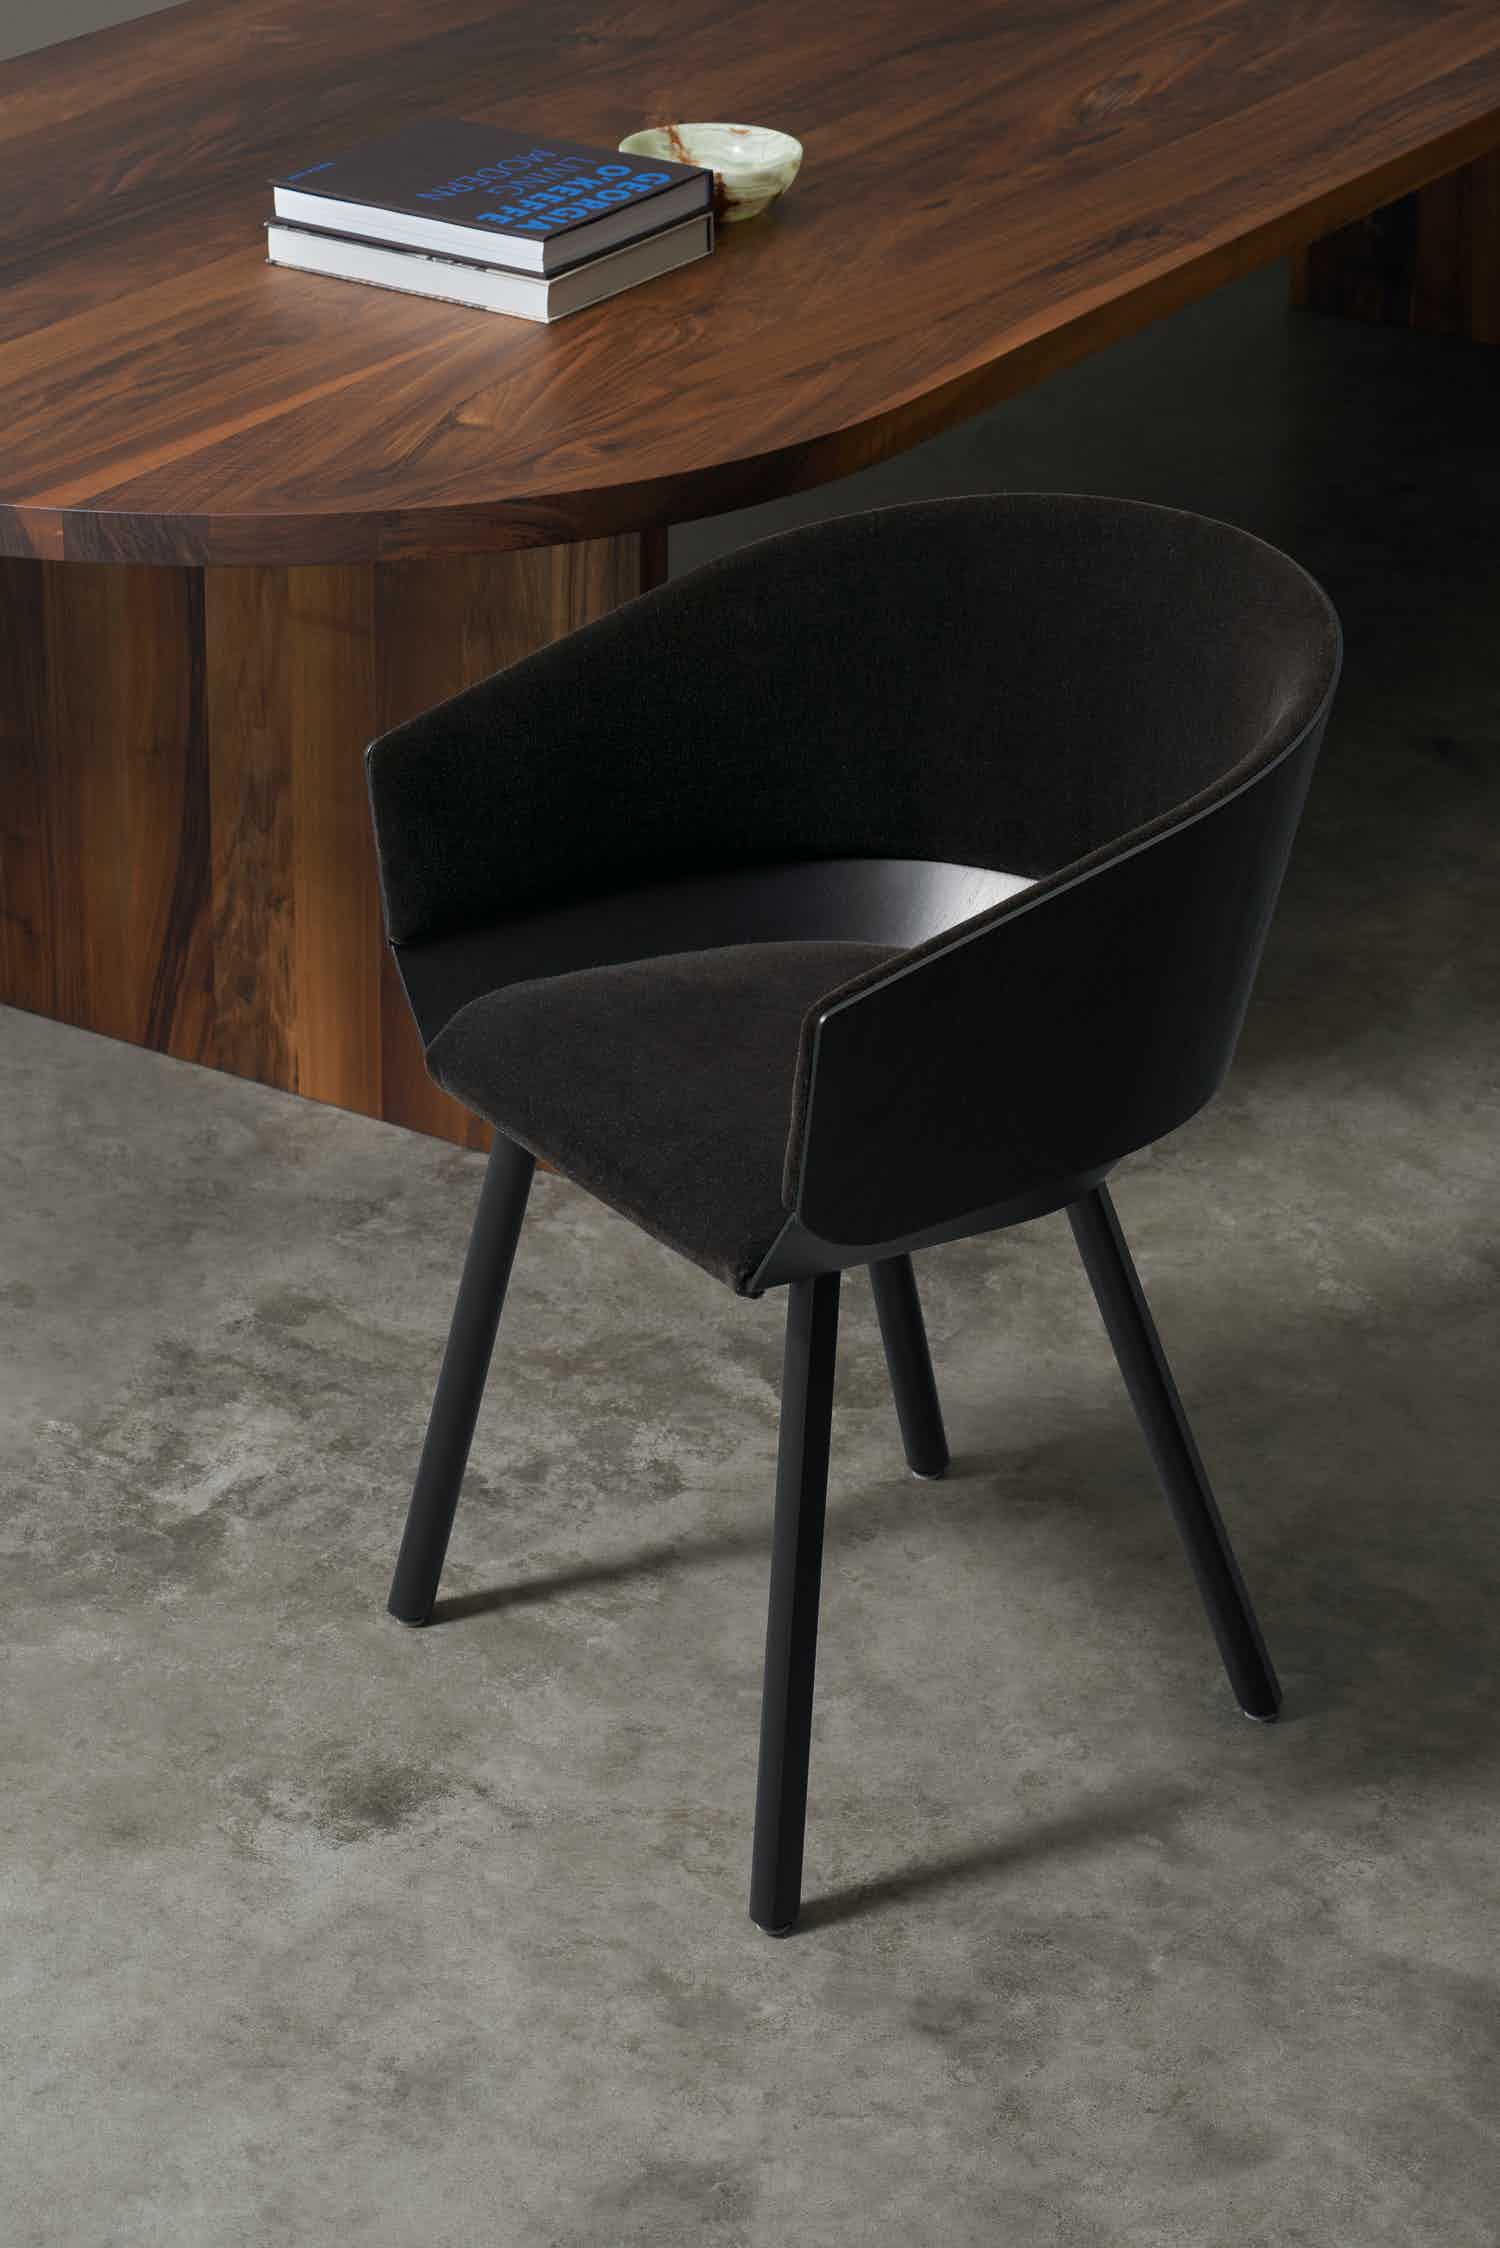 E15 furniture black top houdini institu haute living